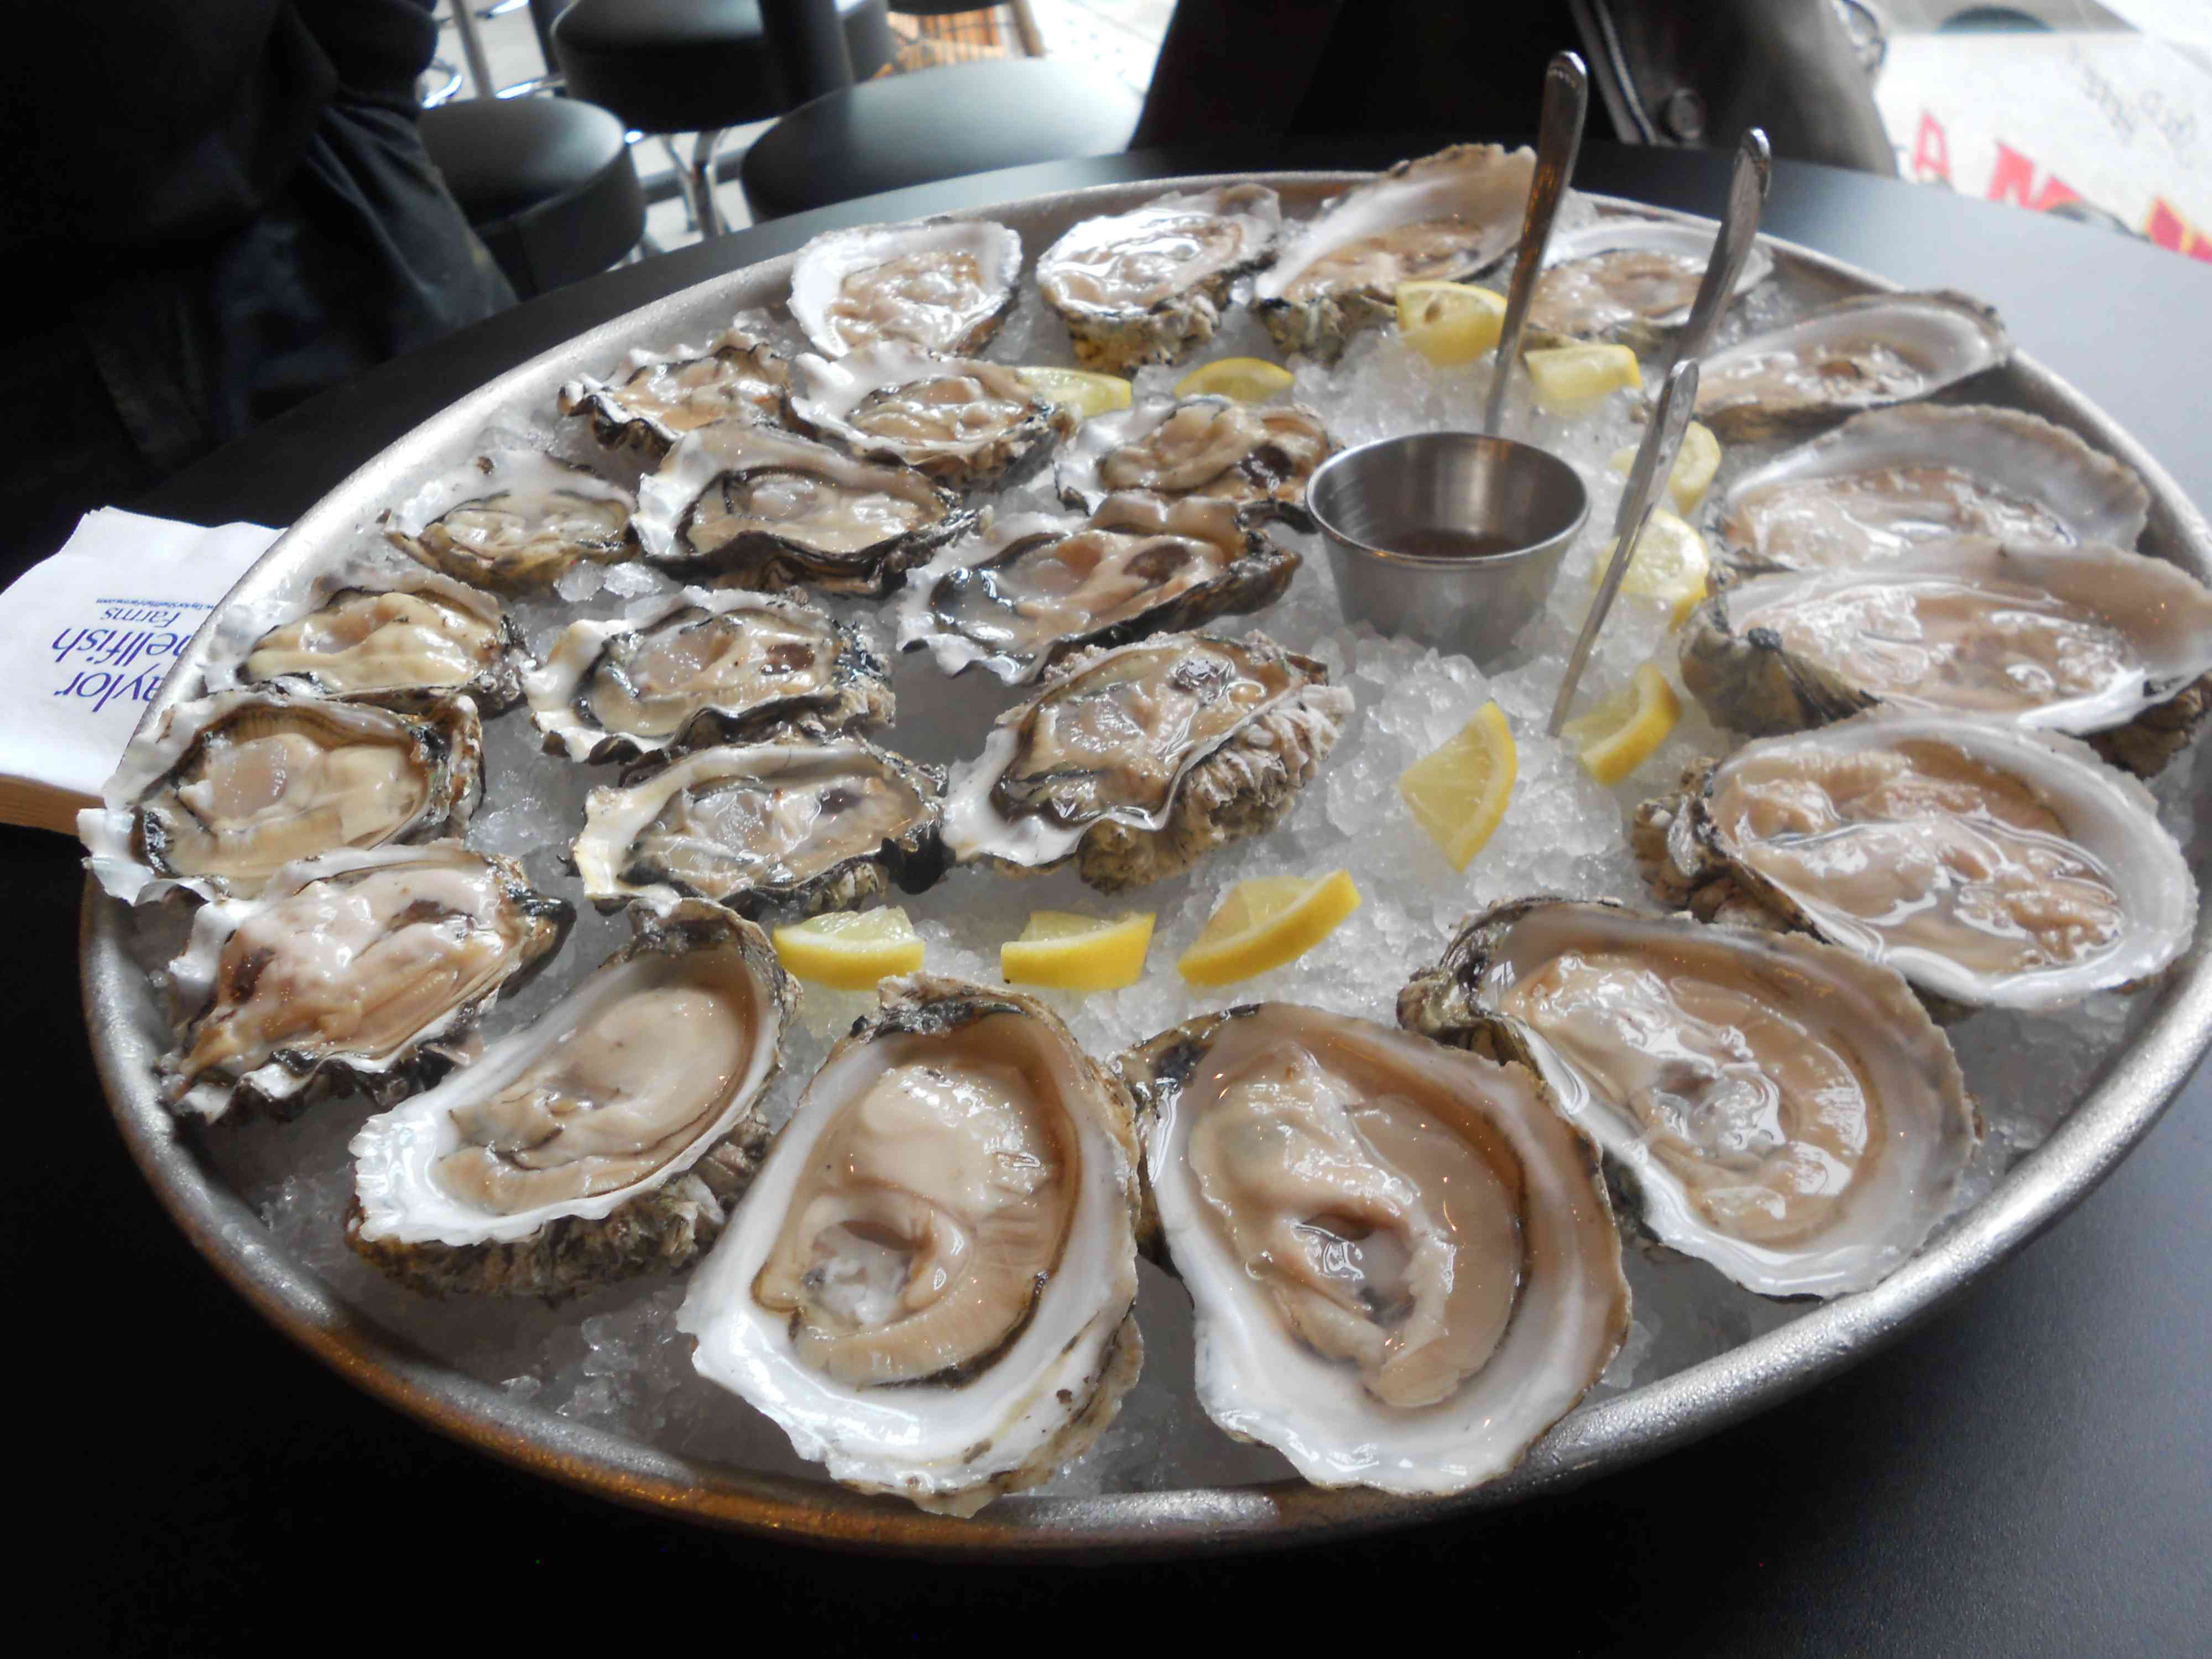 A plate of iced oysters with lemons and knives